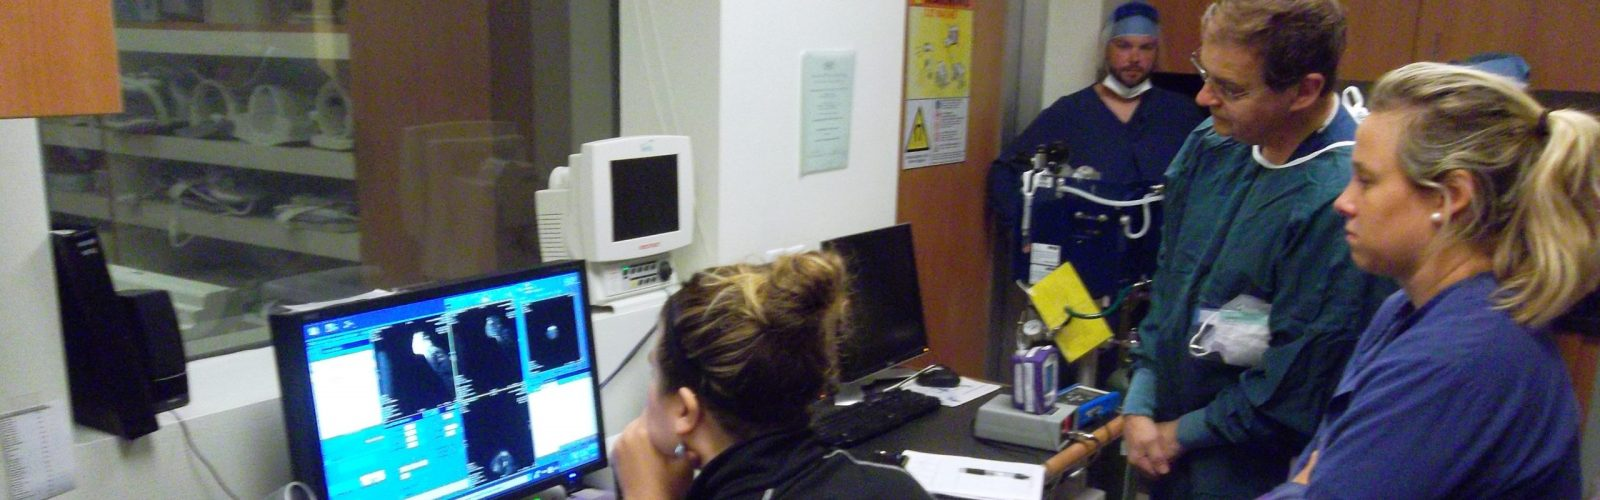 Energy and Metabolic Disease Group members view a marmoset MRI at the Wisconsin Institutes for Medical Research, as part of a study exploring links between energy metabolism and neural function. (R. Shapiro image)